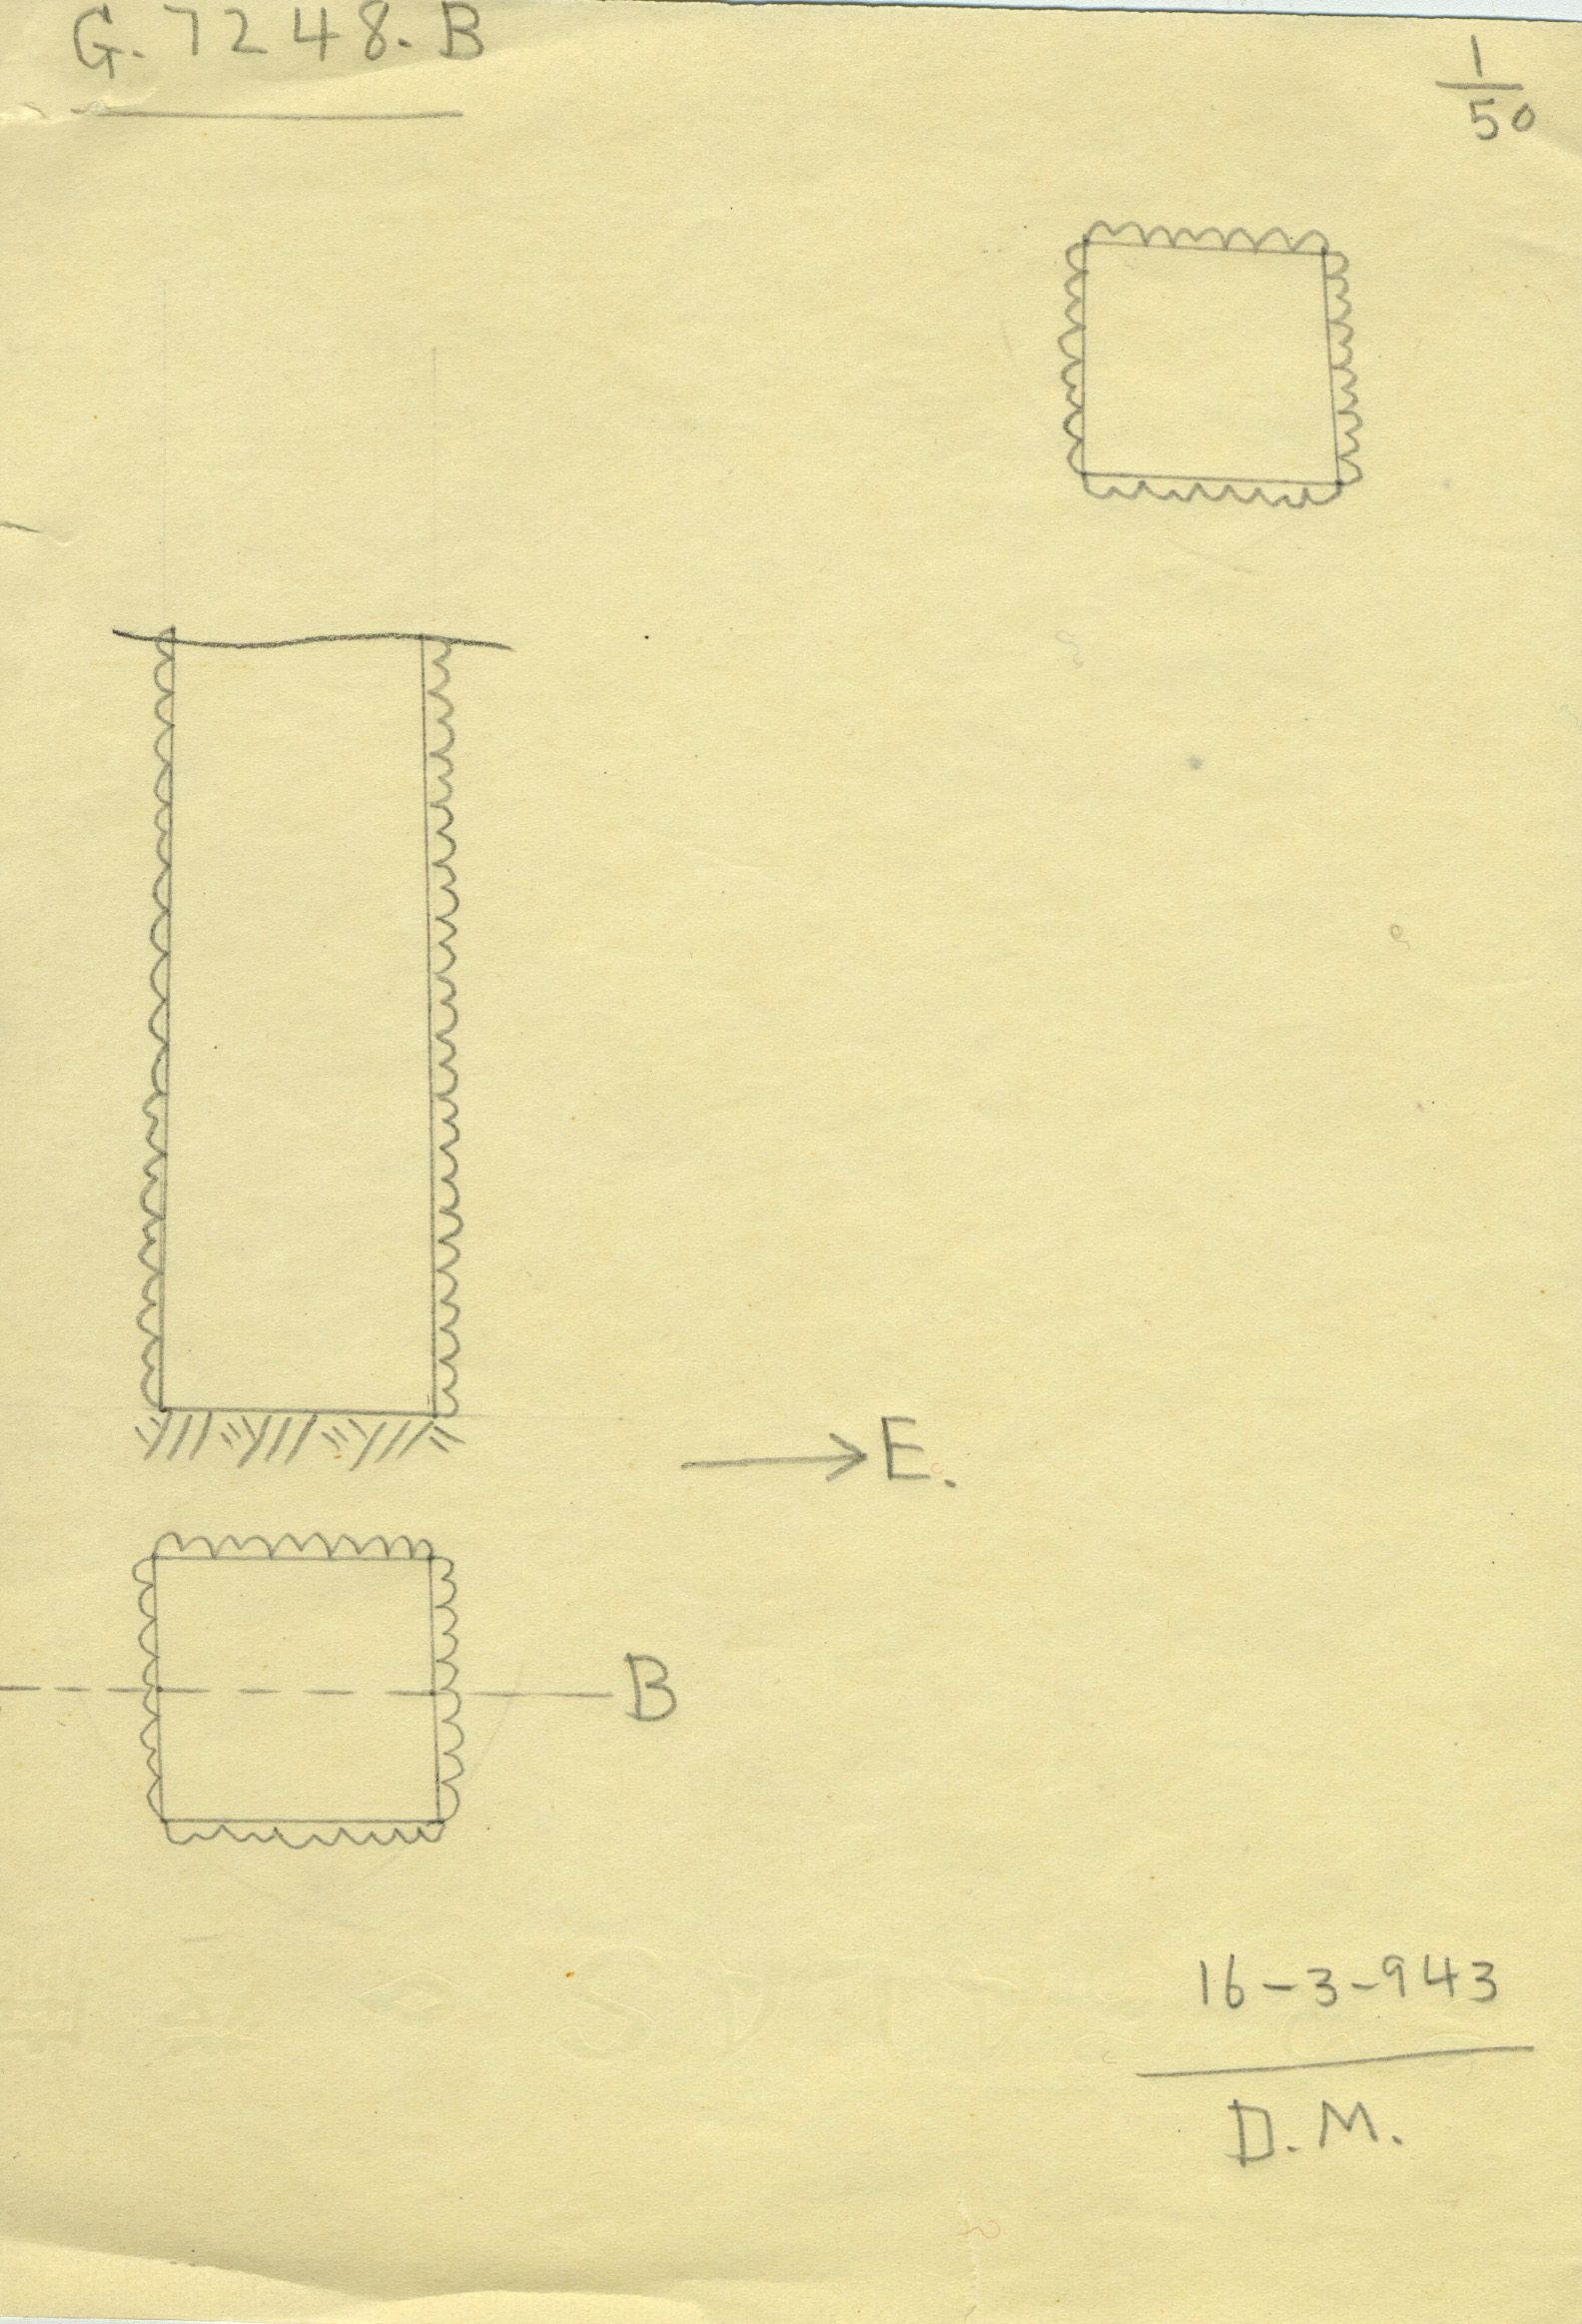 Maps and plans: G 7248, Shaft B